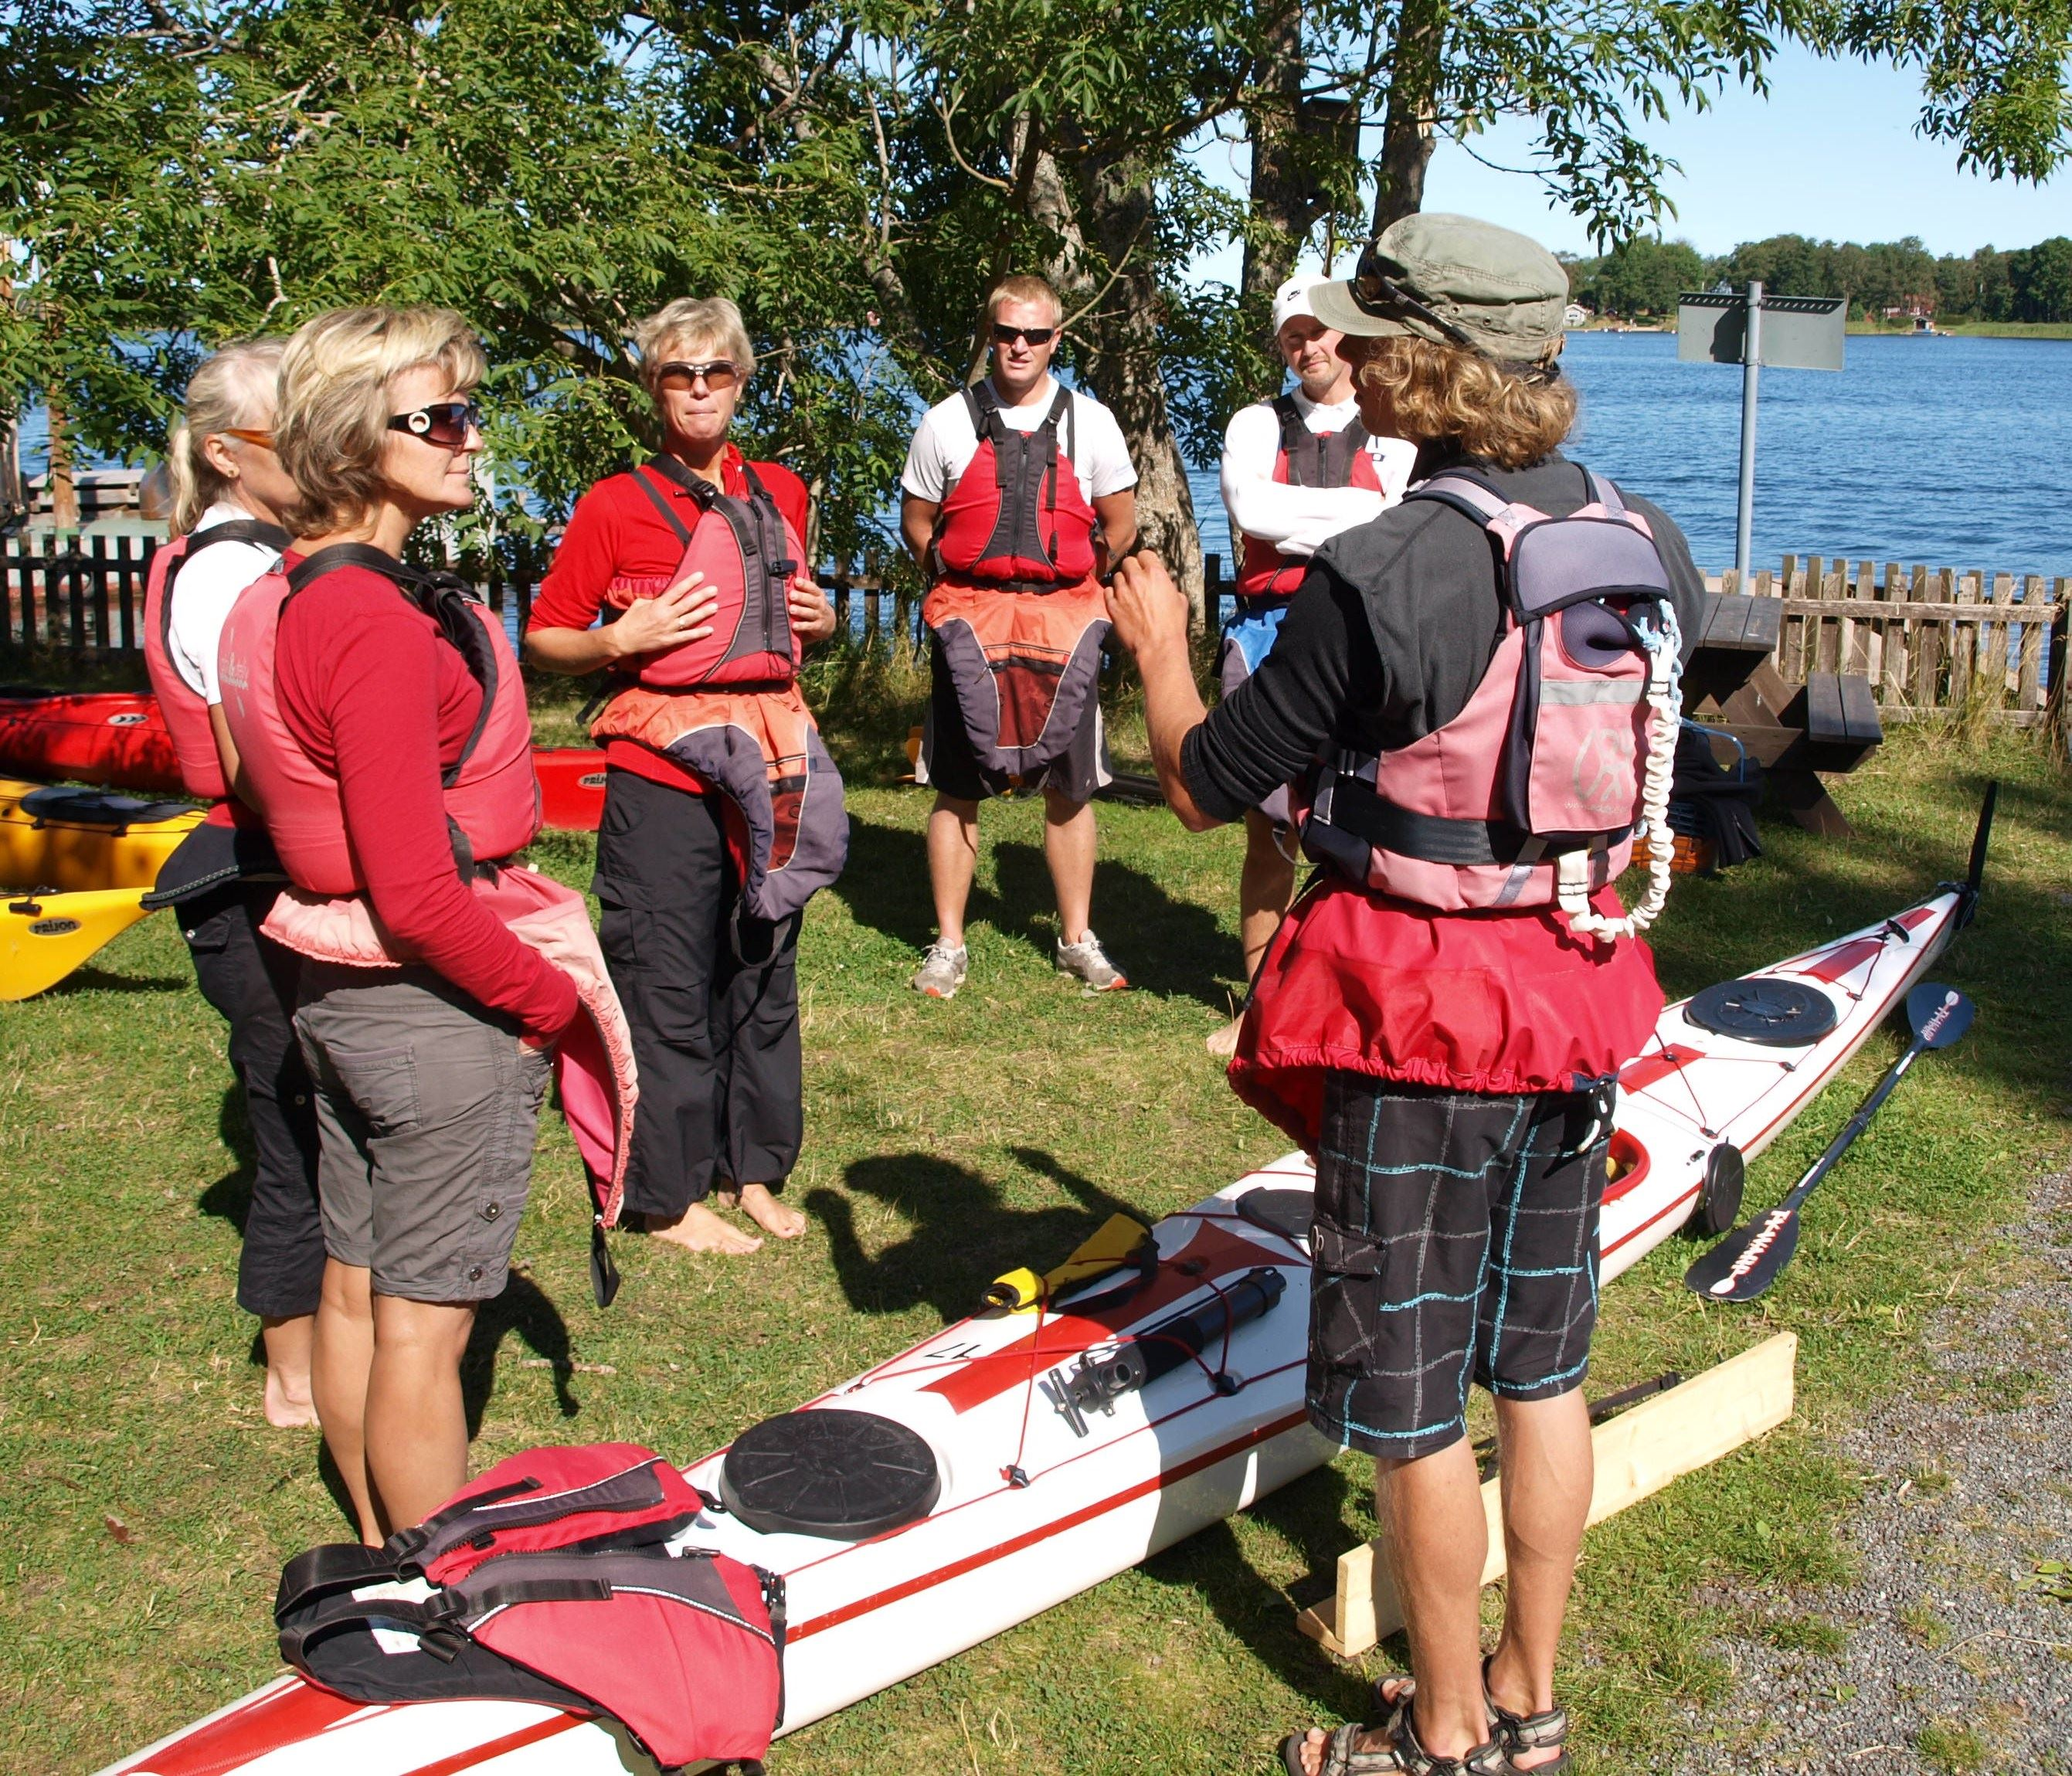 Seakyaking - beginnerscourse in roslagen archipelago with Kajak och Uteliv